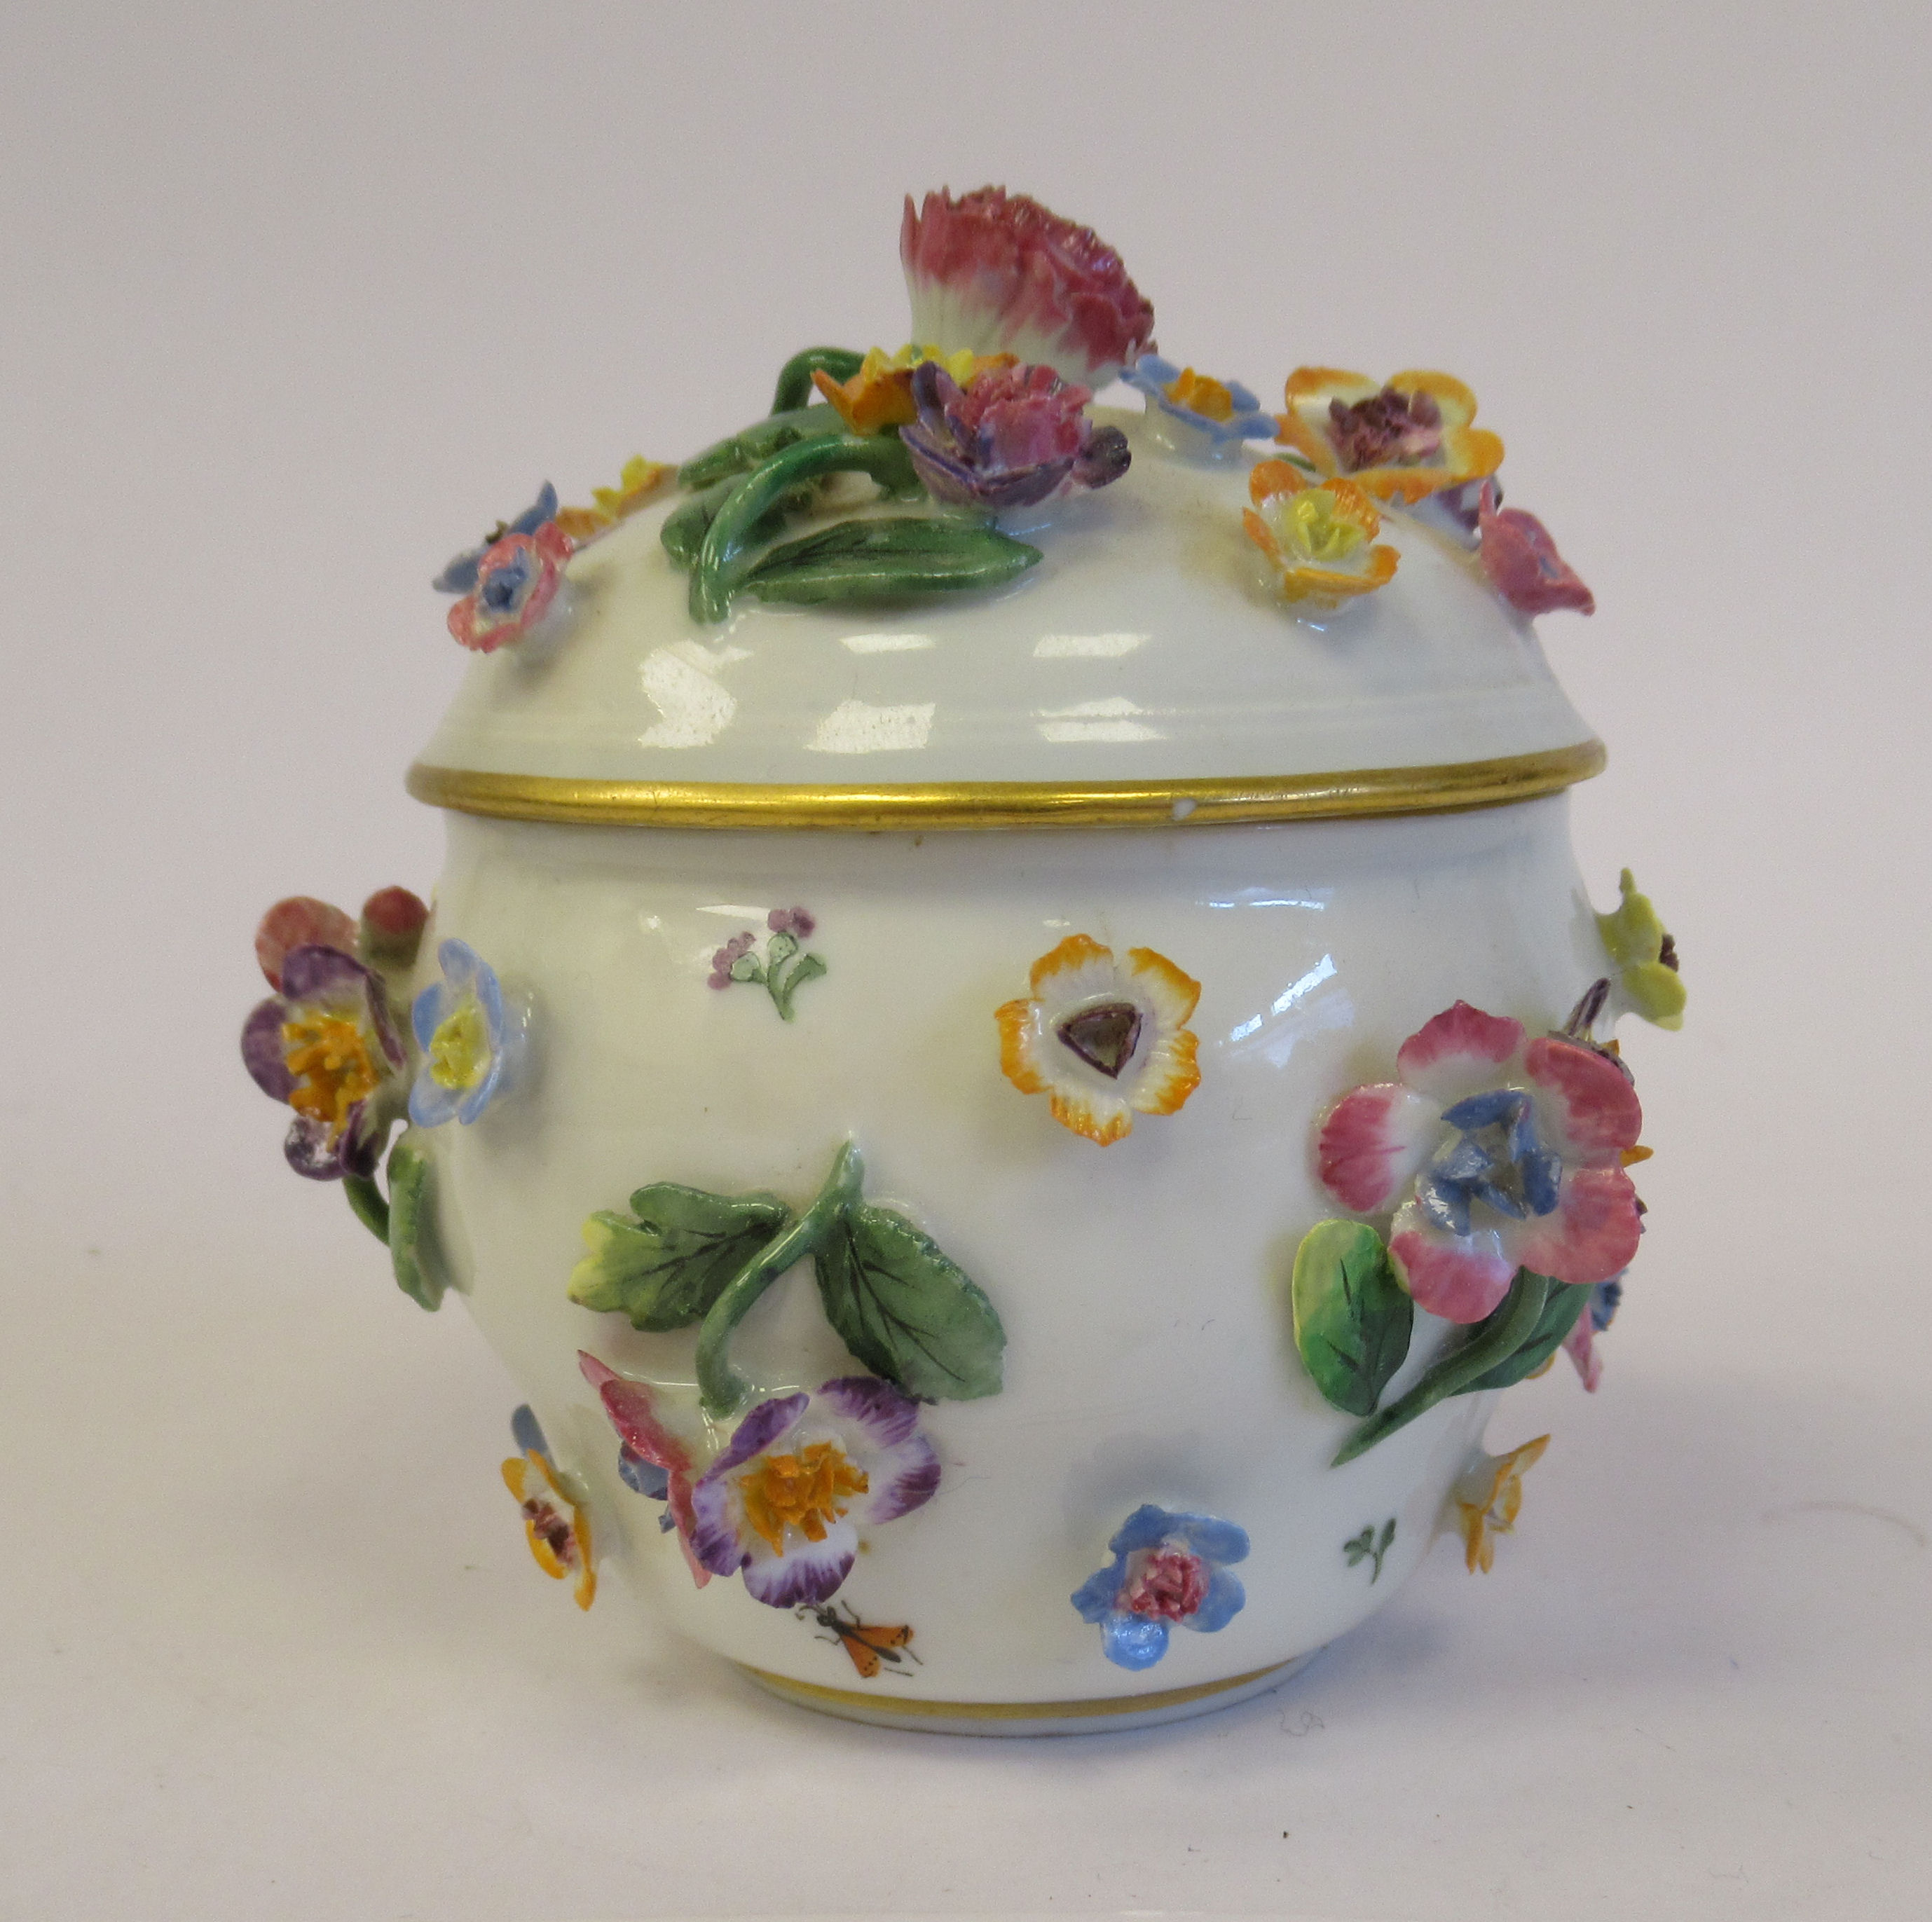 A 19thC Meissen porcelain bulbous pot and domed cover, decorated with encrusted flora and painted